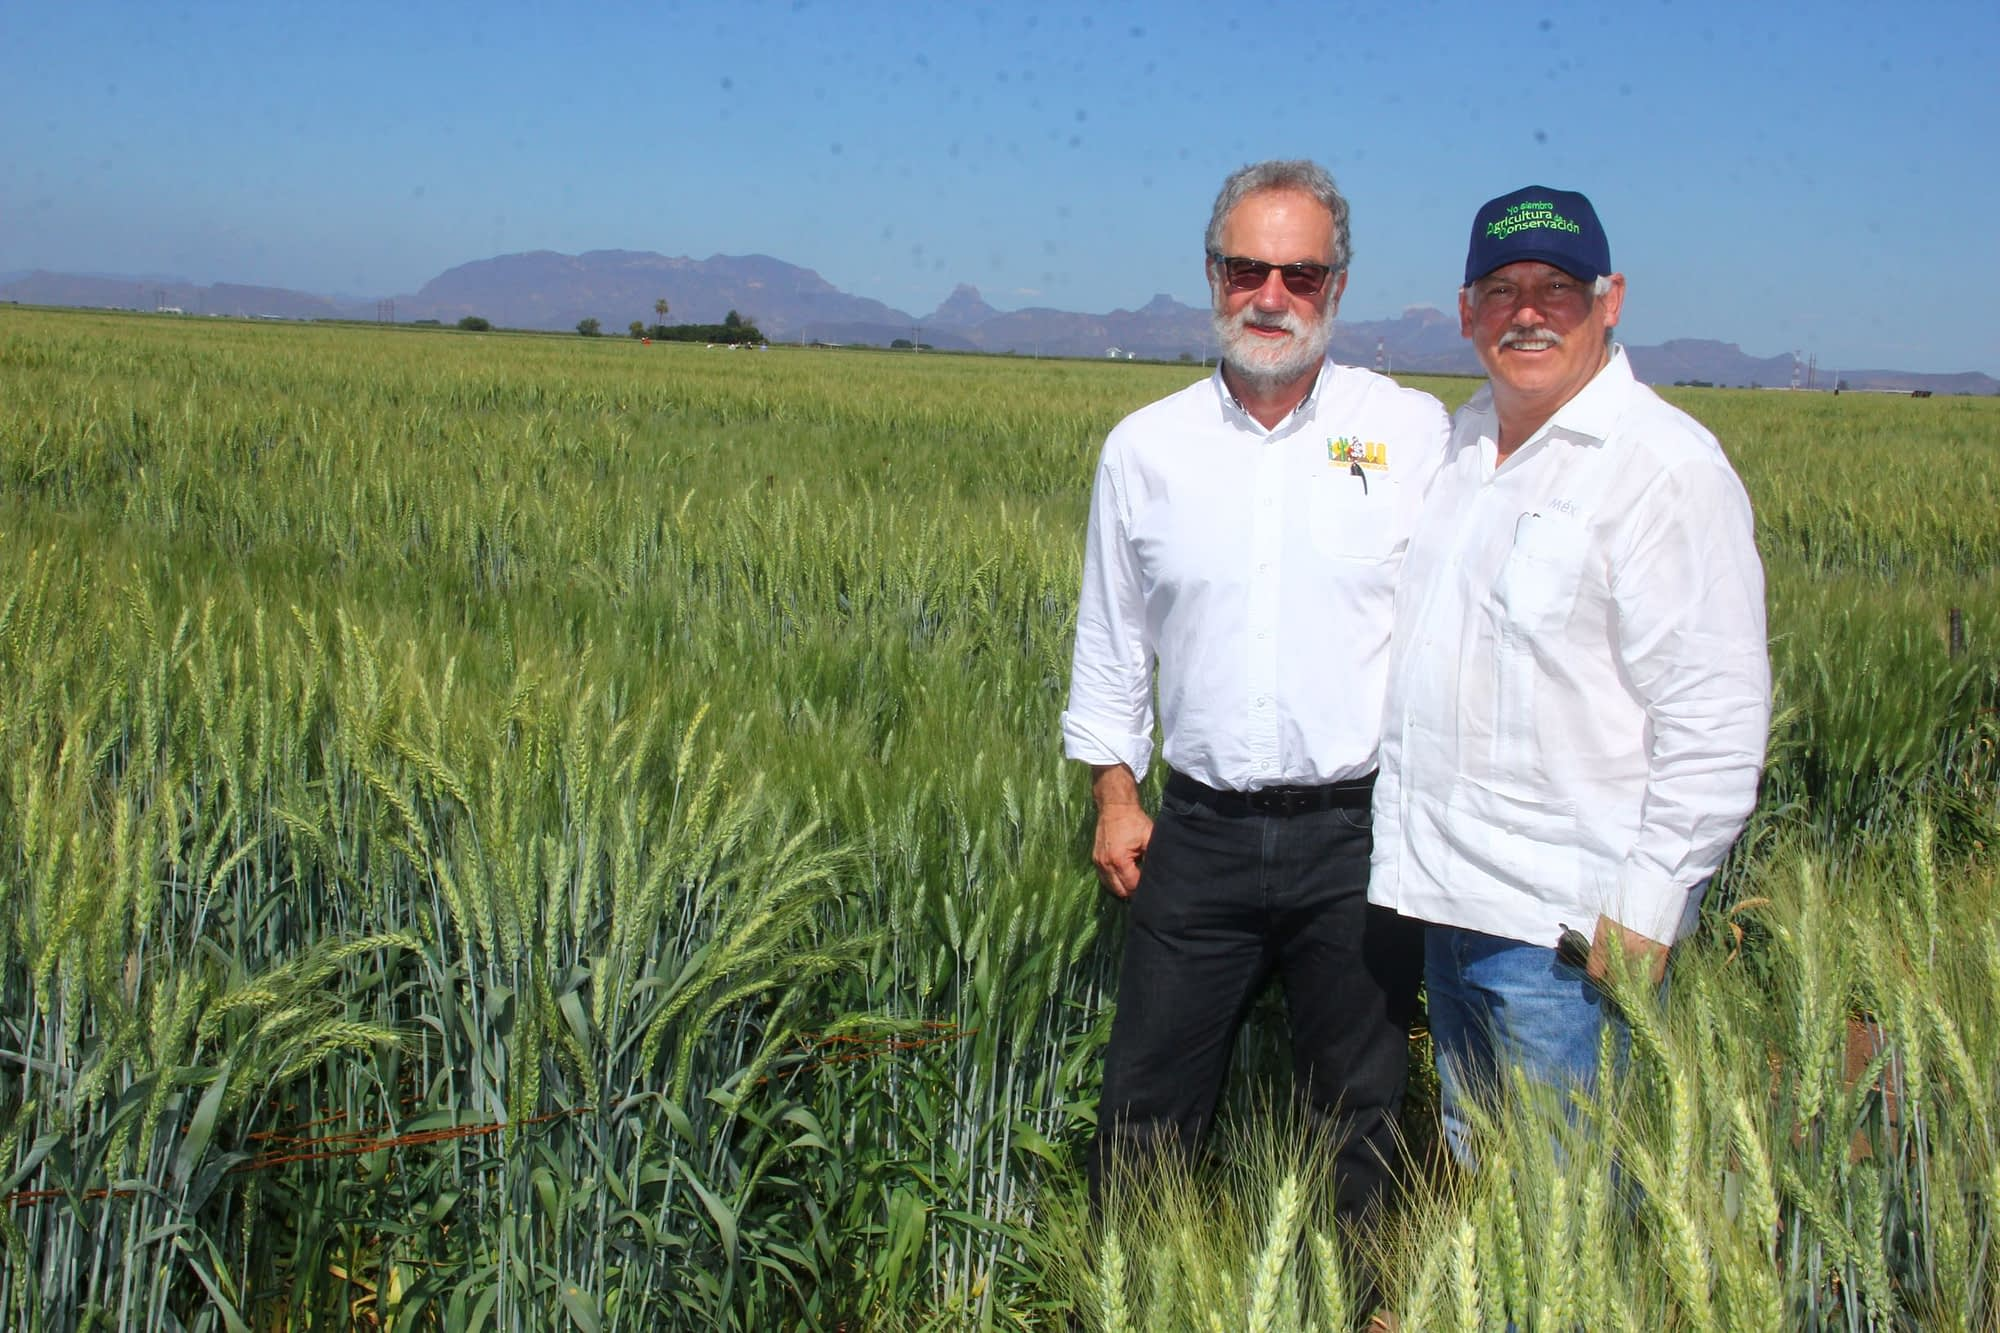 Secretary Villalobos (right) and Hans Braun, Program Director for CIMMYT's Global Wheat Program, stand for a photograph in a wheat field at the experimental station in Obregón. (Photo: Ernesto Blancarte)